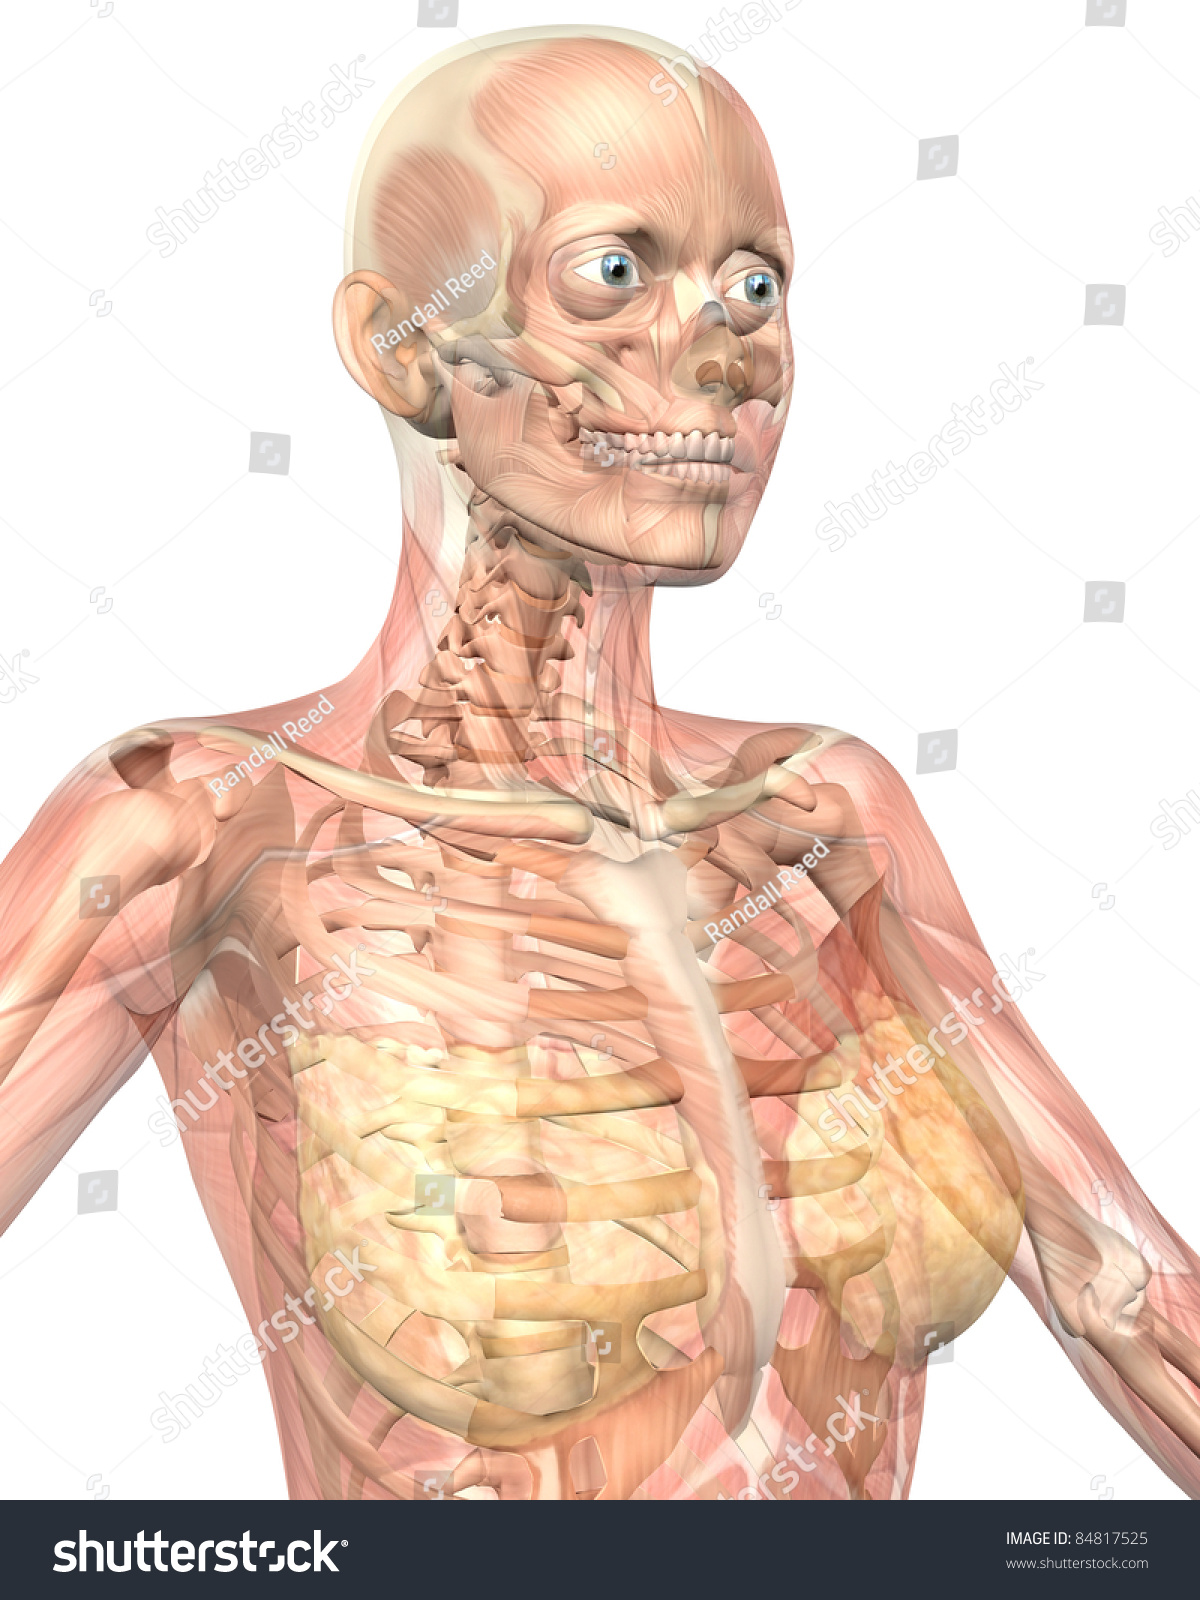 Illustration Close View Female Muscular Anatomy Stock Illustration